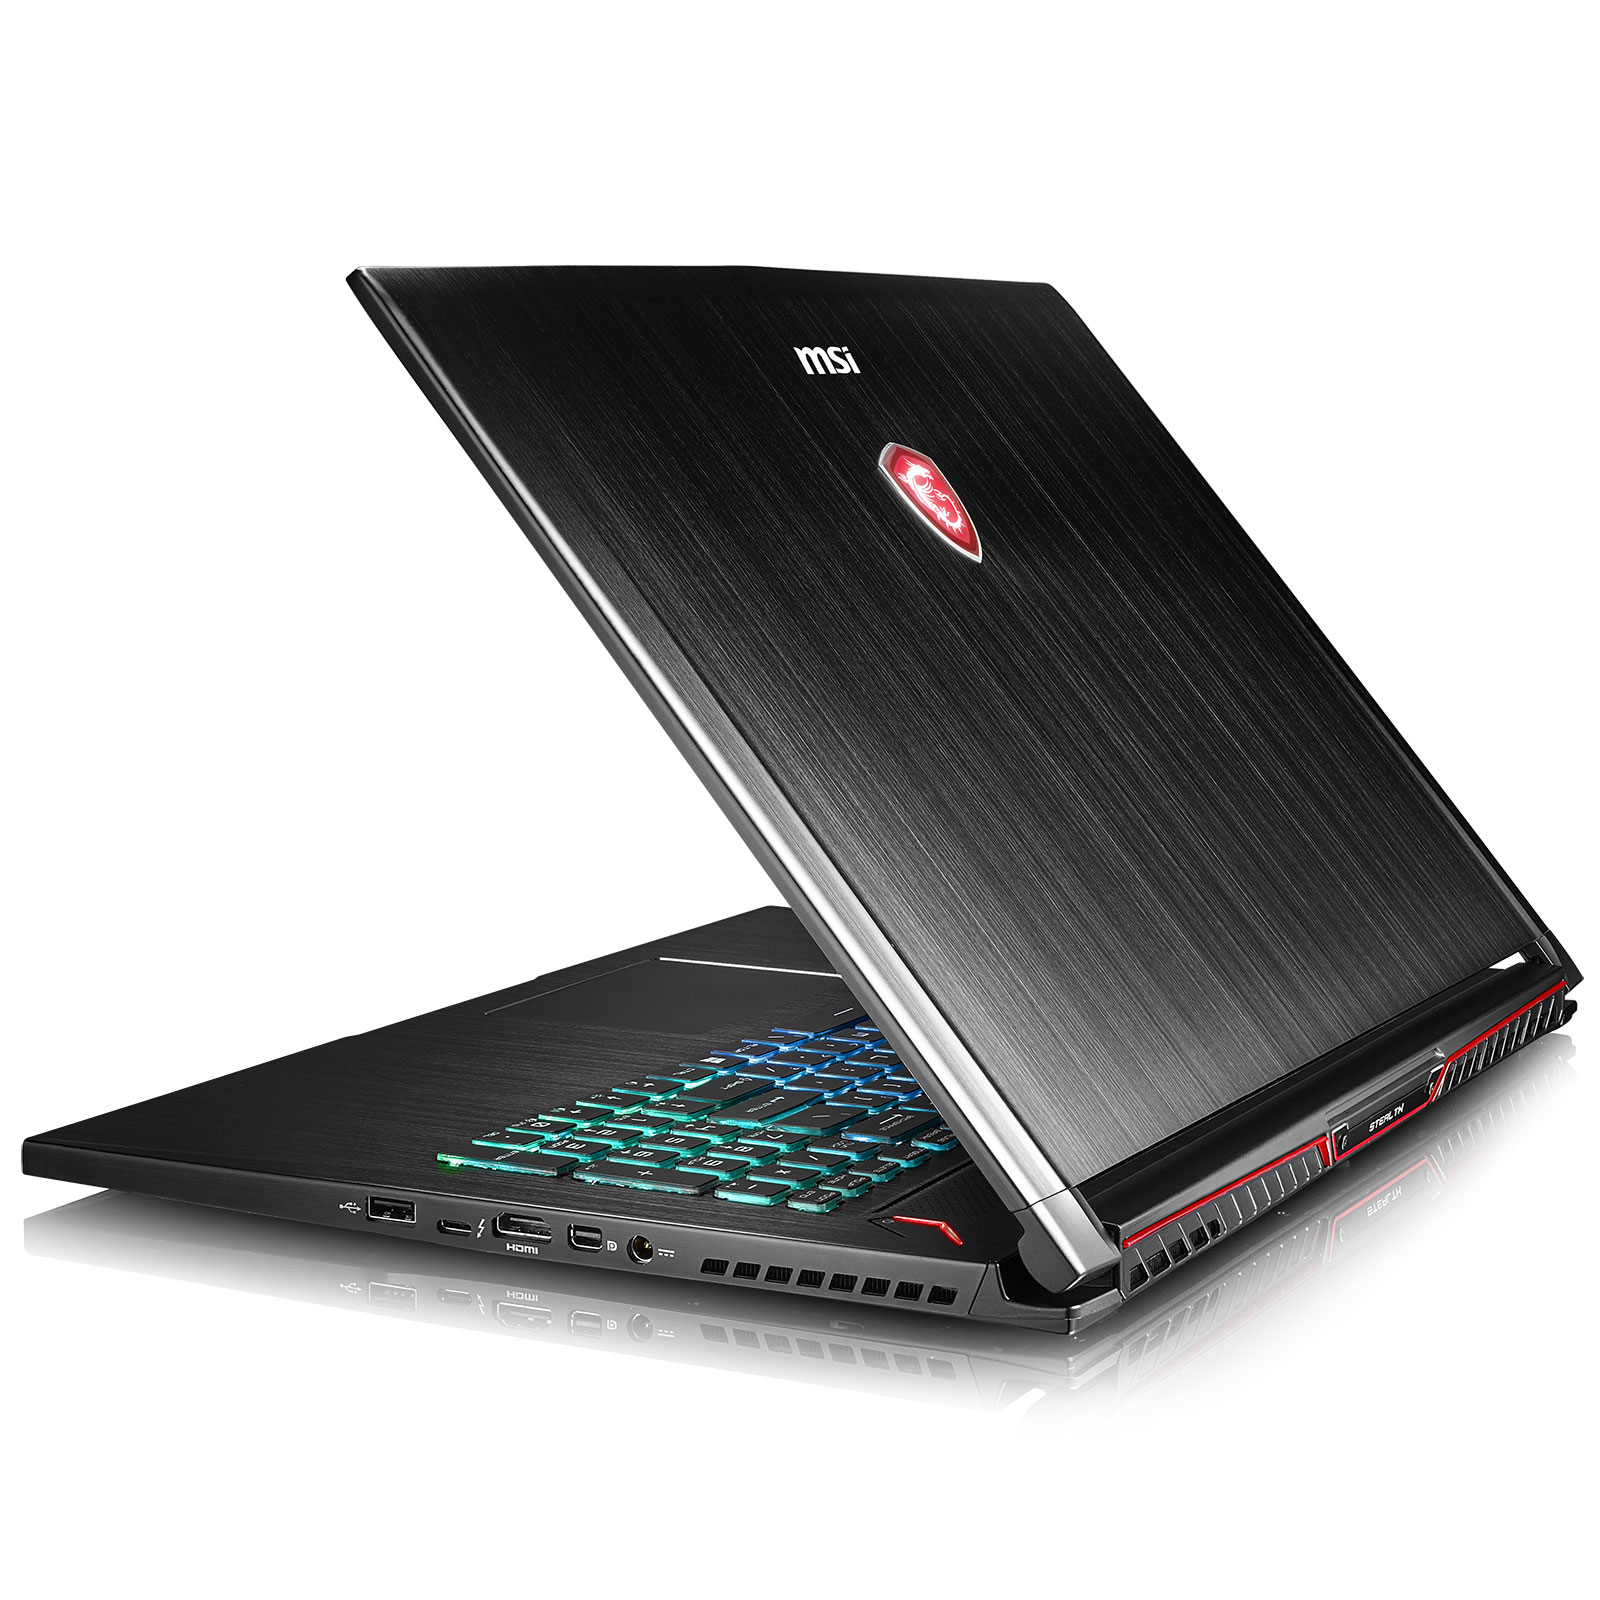 MSI 9S7-17B312-013 - PC portable MSI - Cybertek.fr - 2